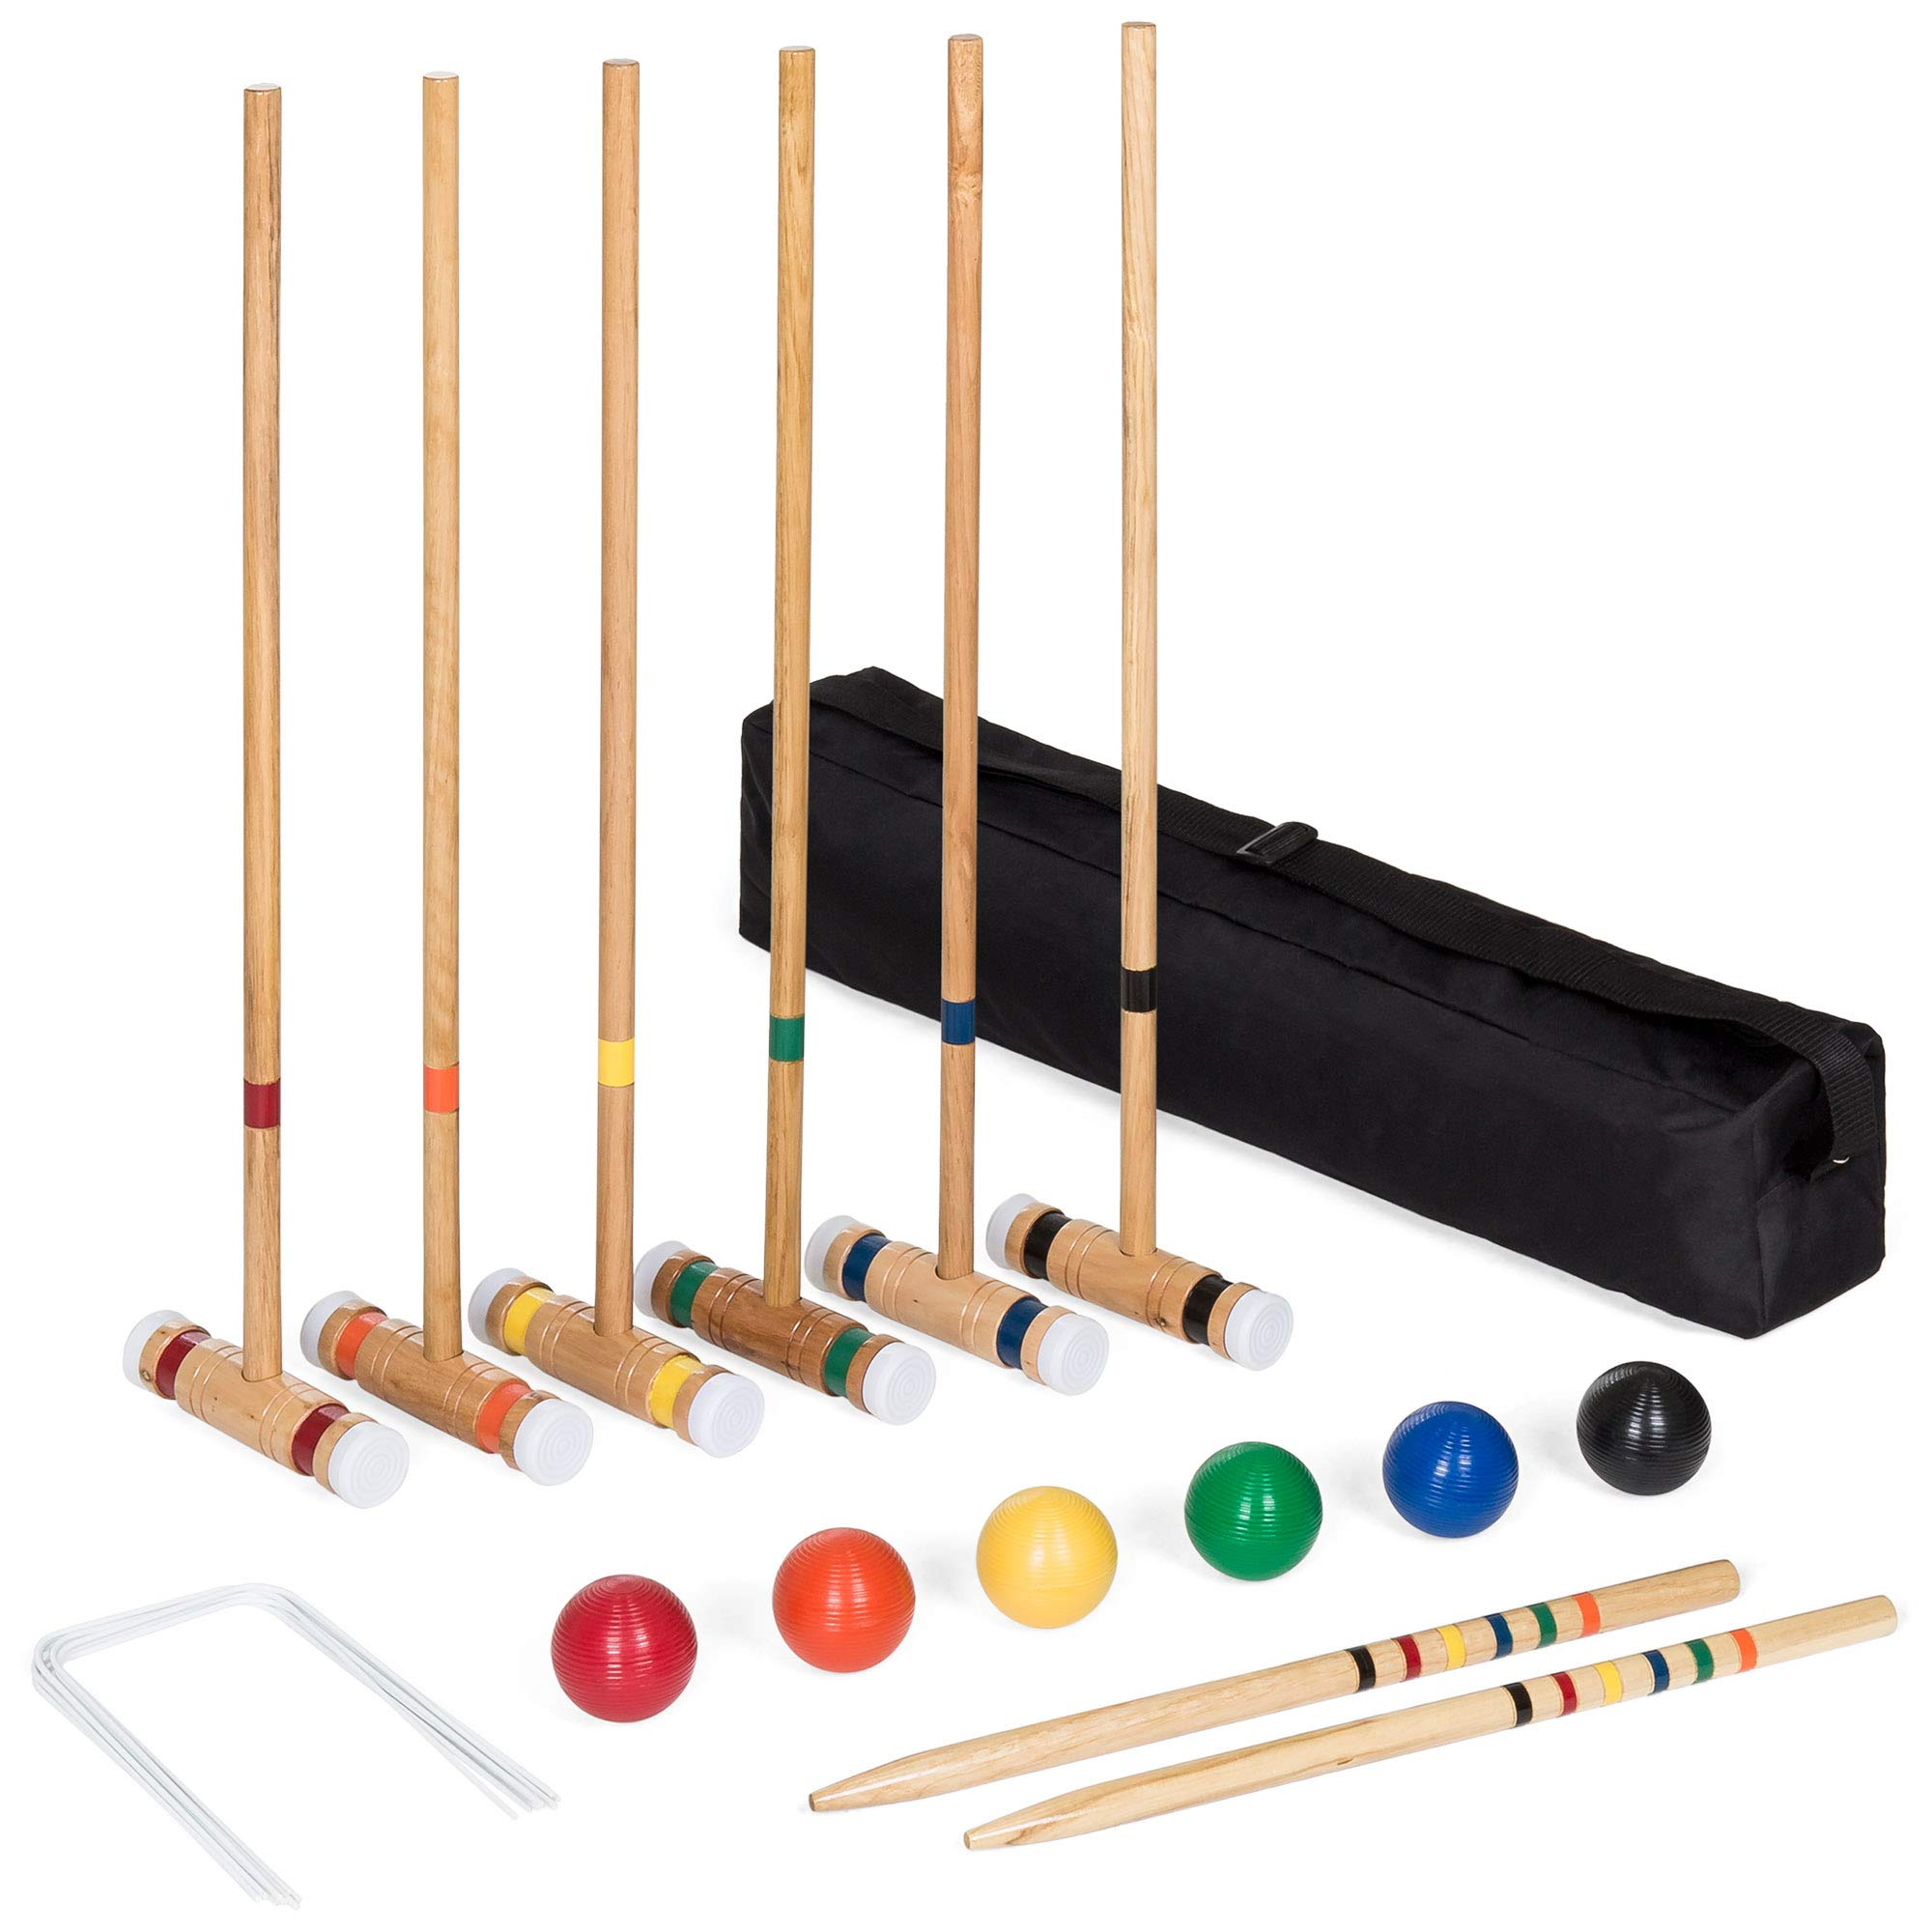 Best Choice Products 6-Player 32in Yard Classic Wood Croquet Sport Game Set w/ 6 Mallets, 6 Balls, Wickets, Stakes, Bag by Best Choice Products